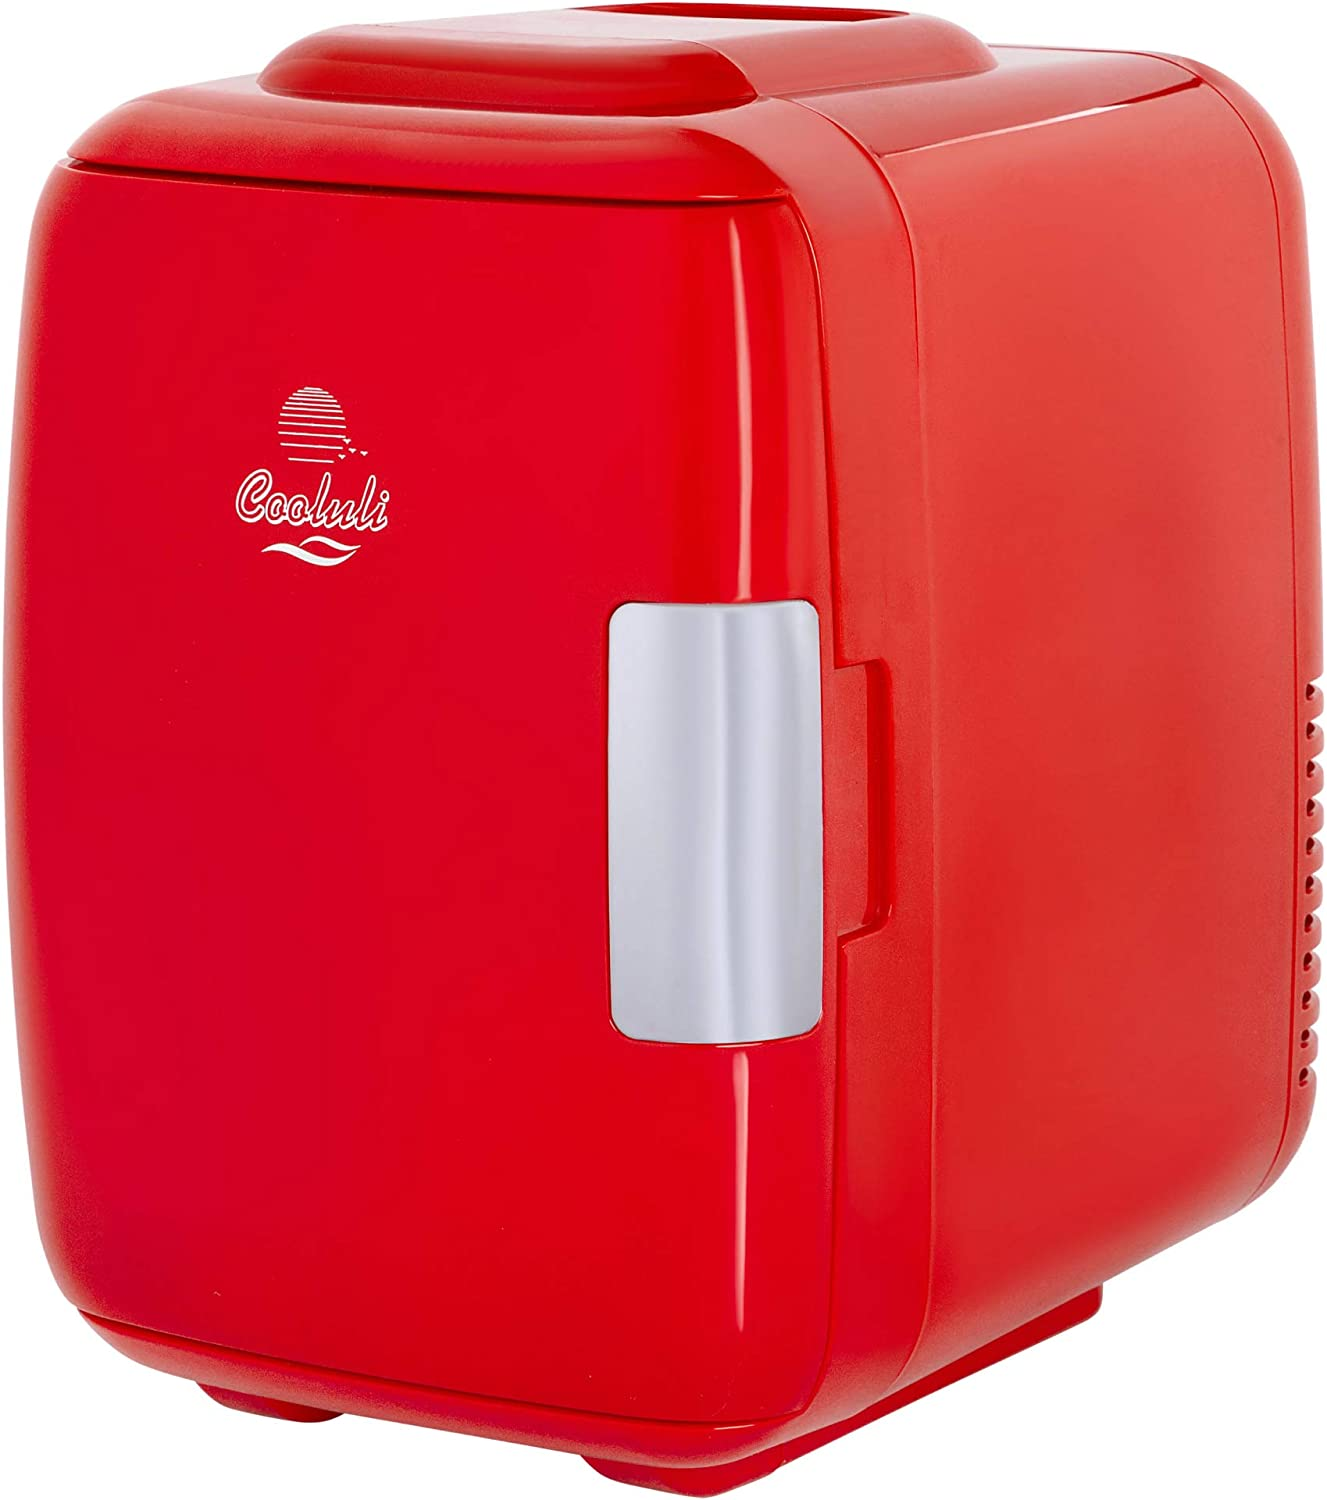 B079G4Z3GQ Cooluli Classic Red 4 Liter Compact Cooler Warmer Mini Fridge with AC/DC/USB Power - Great for Bedroom, Office, Car, Dorm - Portable Makeup Skincare Fridge 71hWRNiSlUL